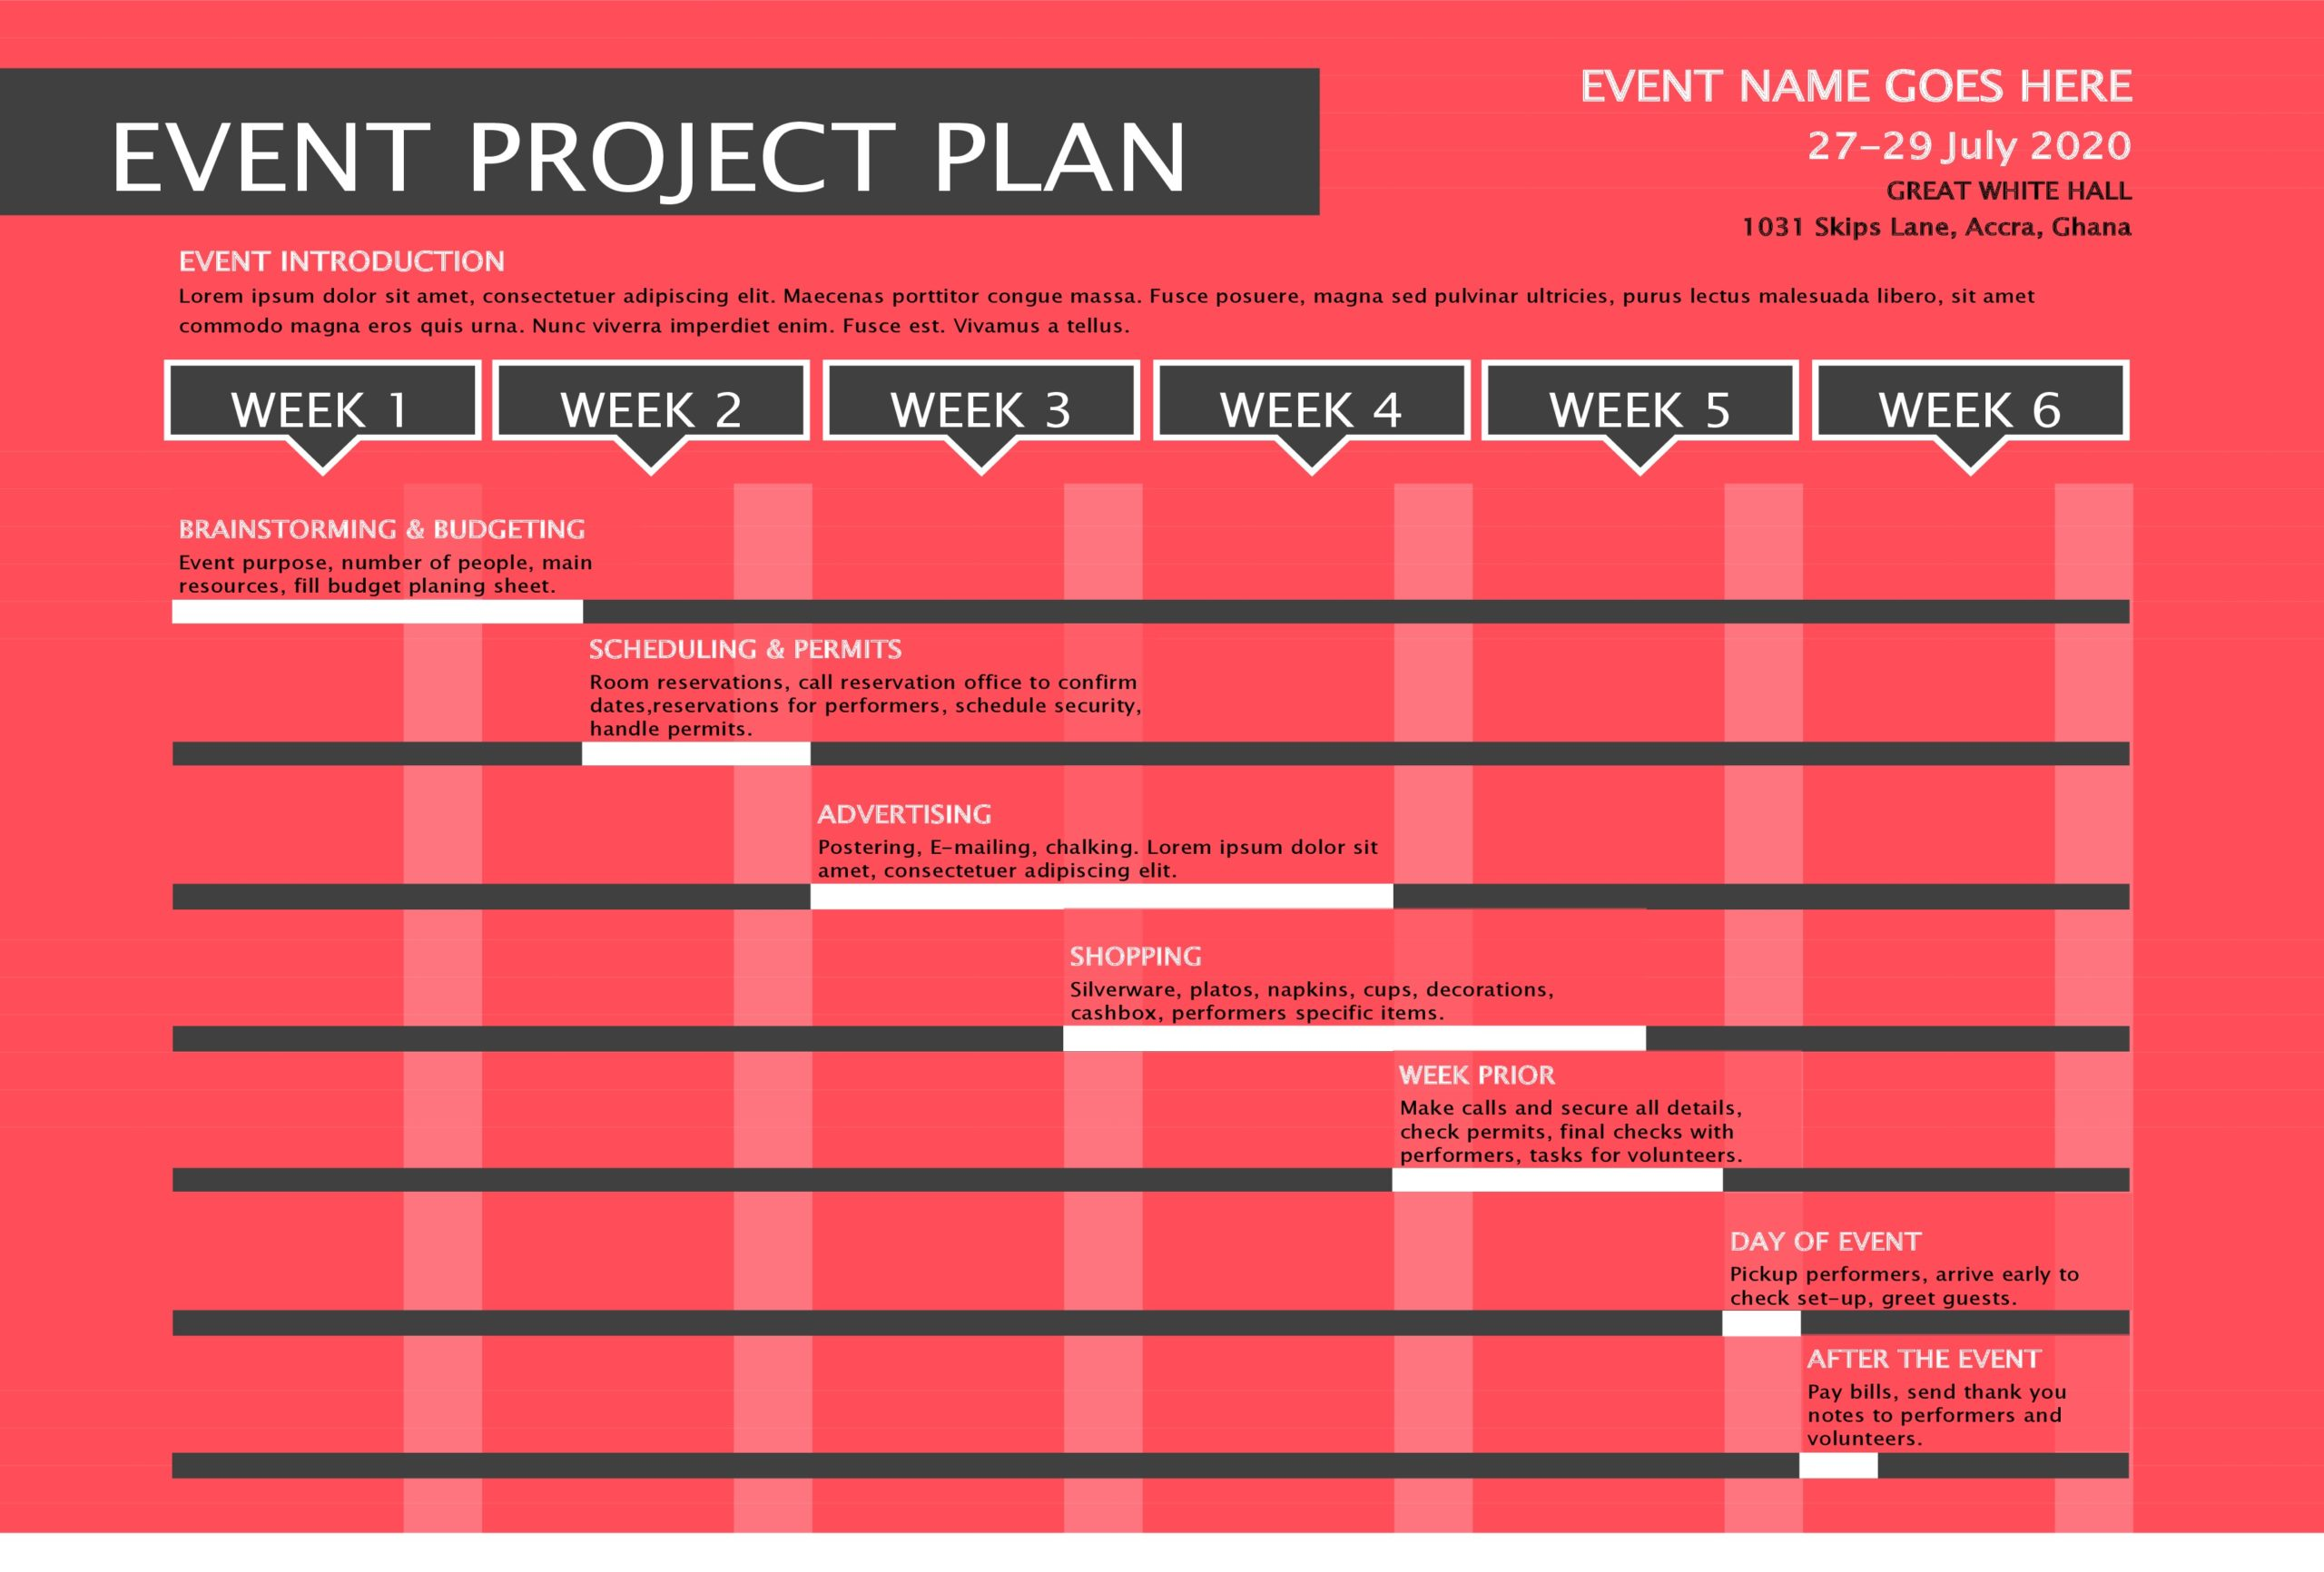 Free Event Project Plan Template - TemplateLab.com